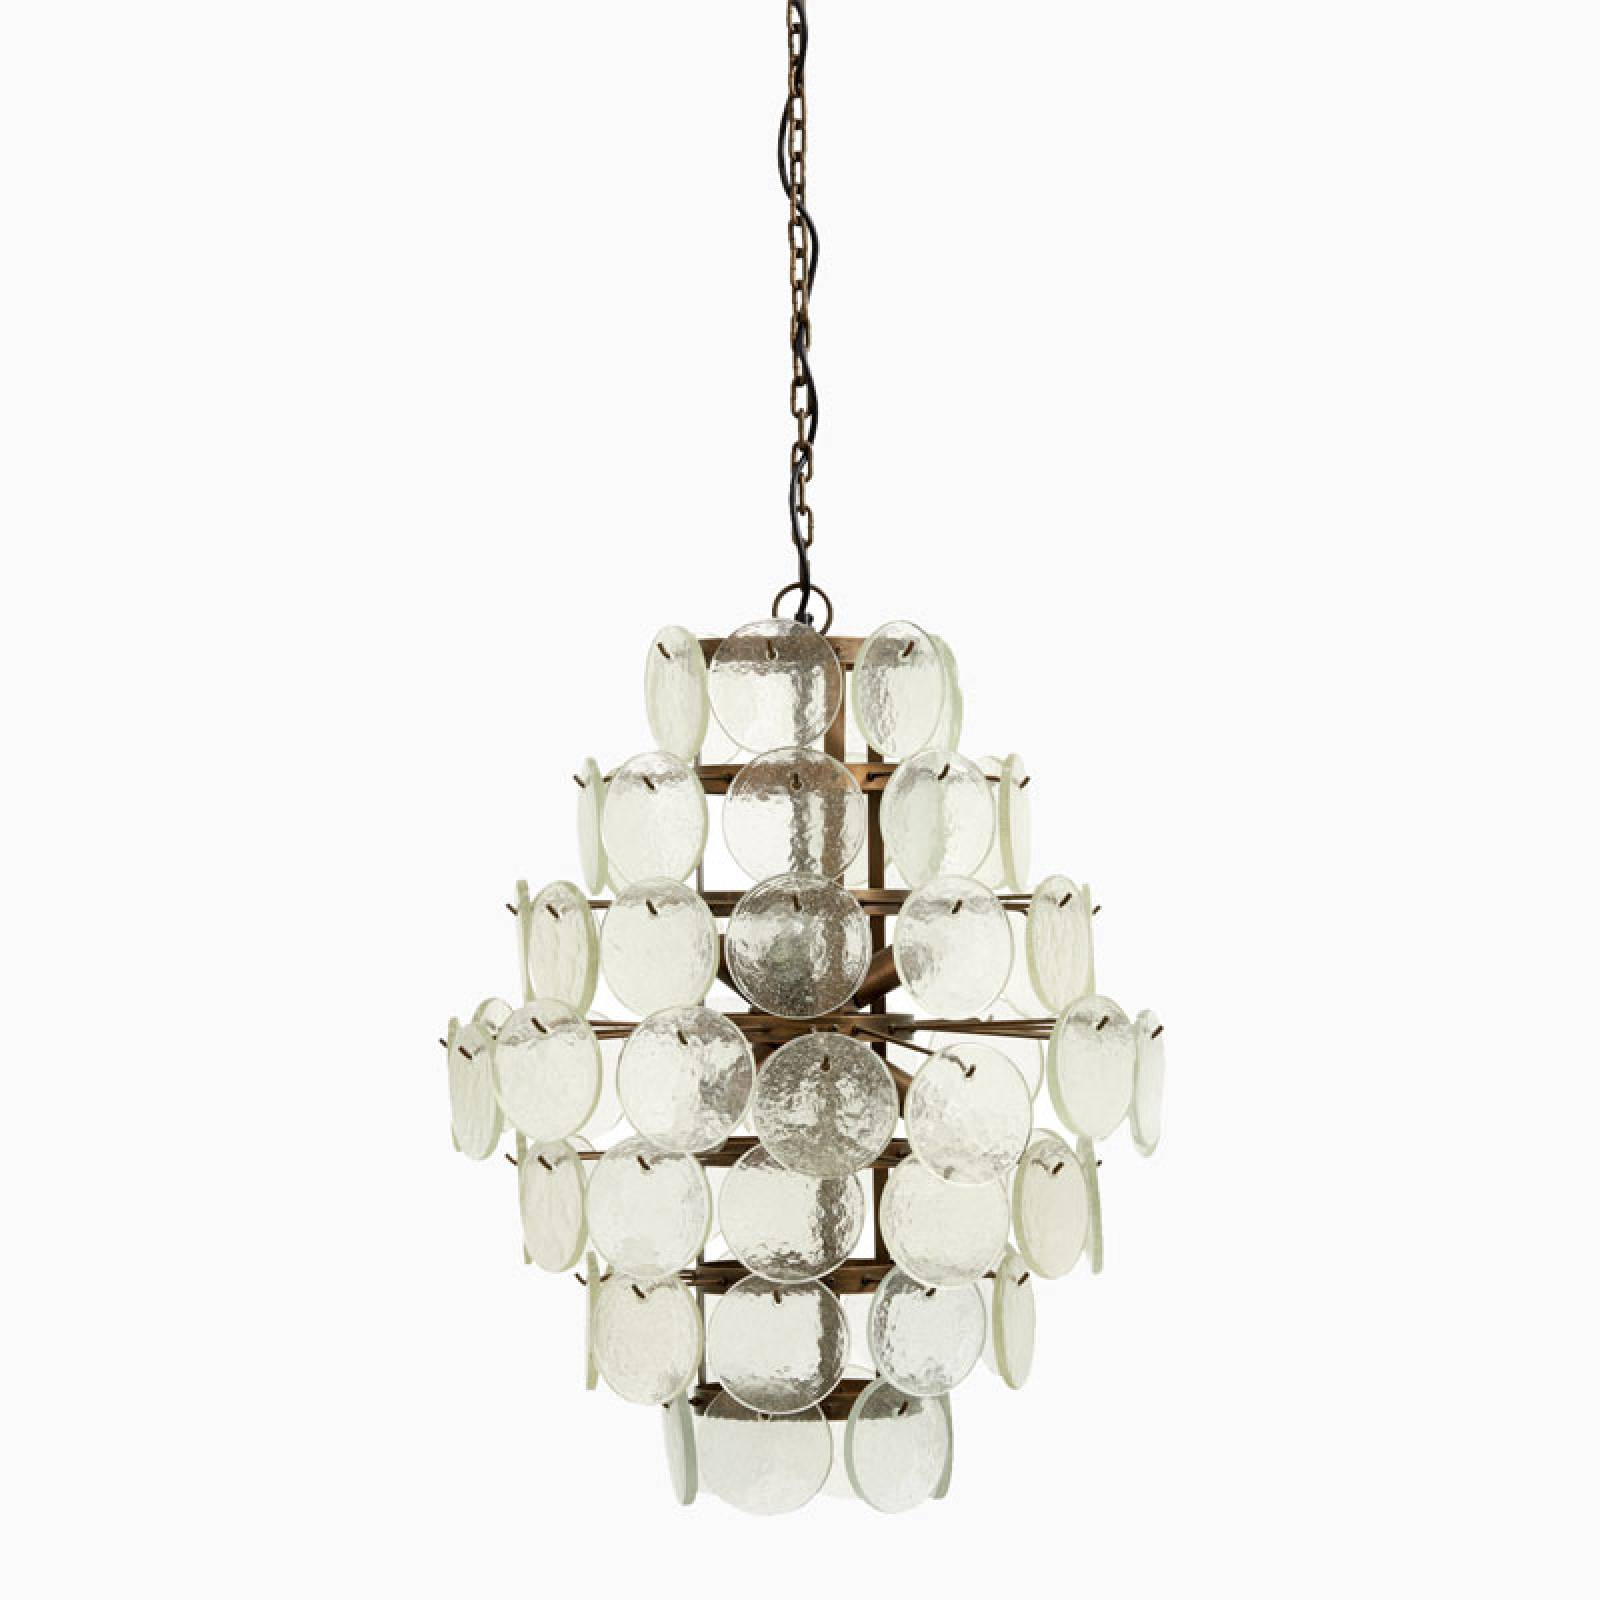 Glass Coin Pendant Lamp Chandelier